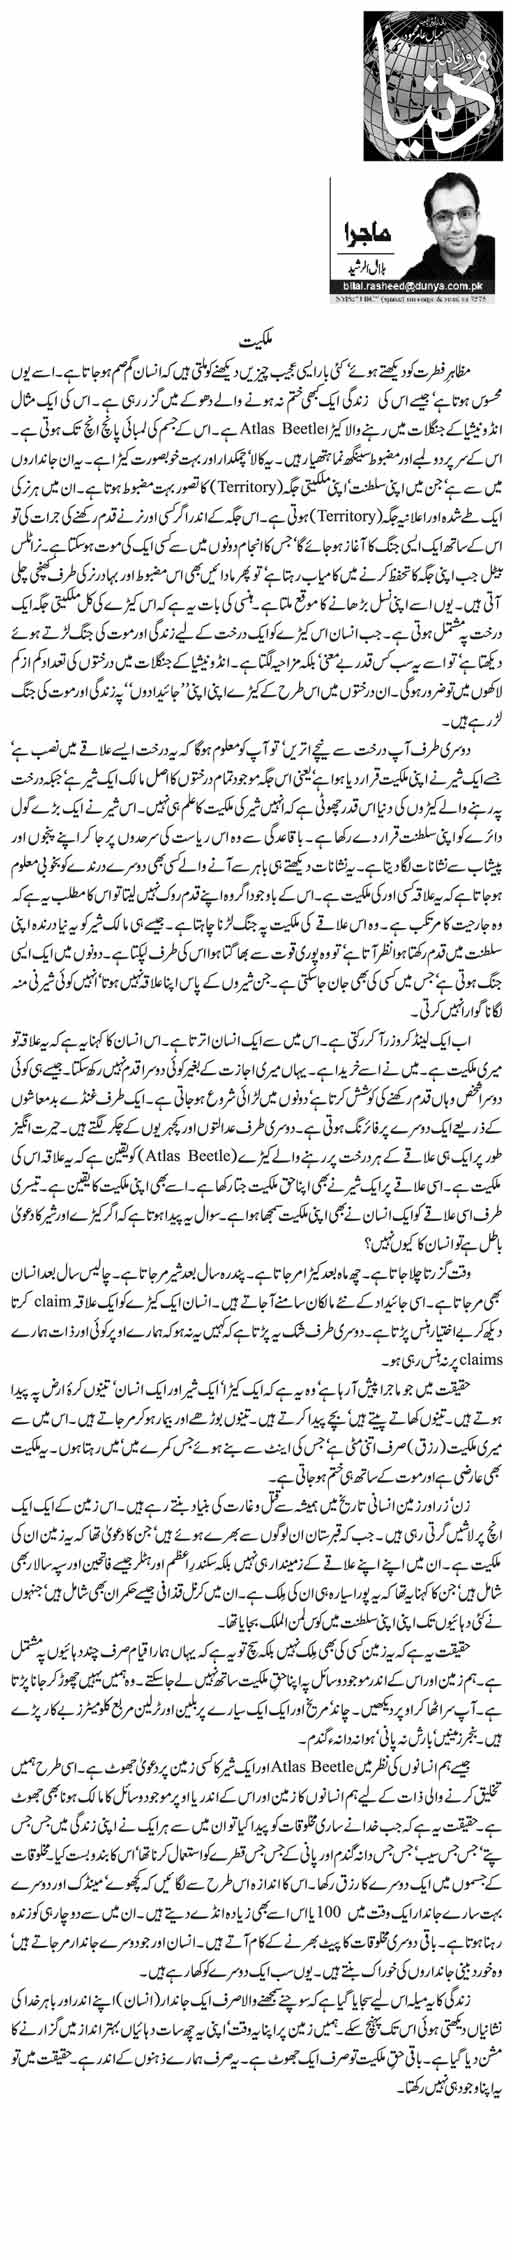 Malkiat | Bilal Ur Rasheed | Daily Urdu Columns